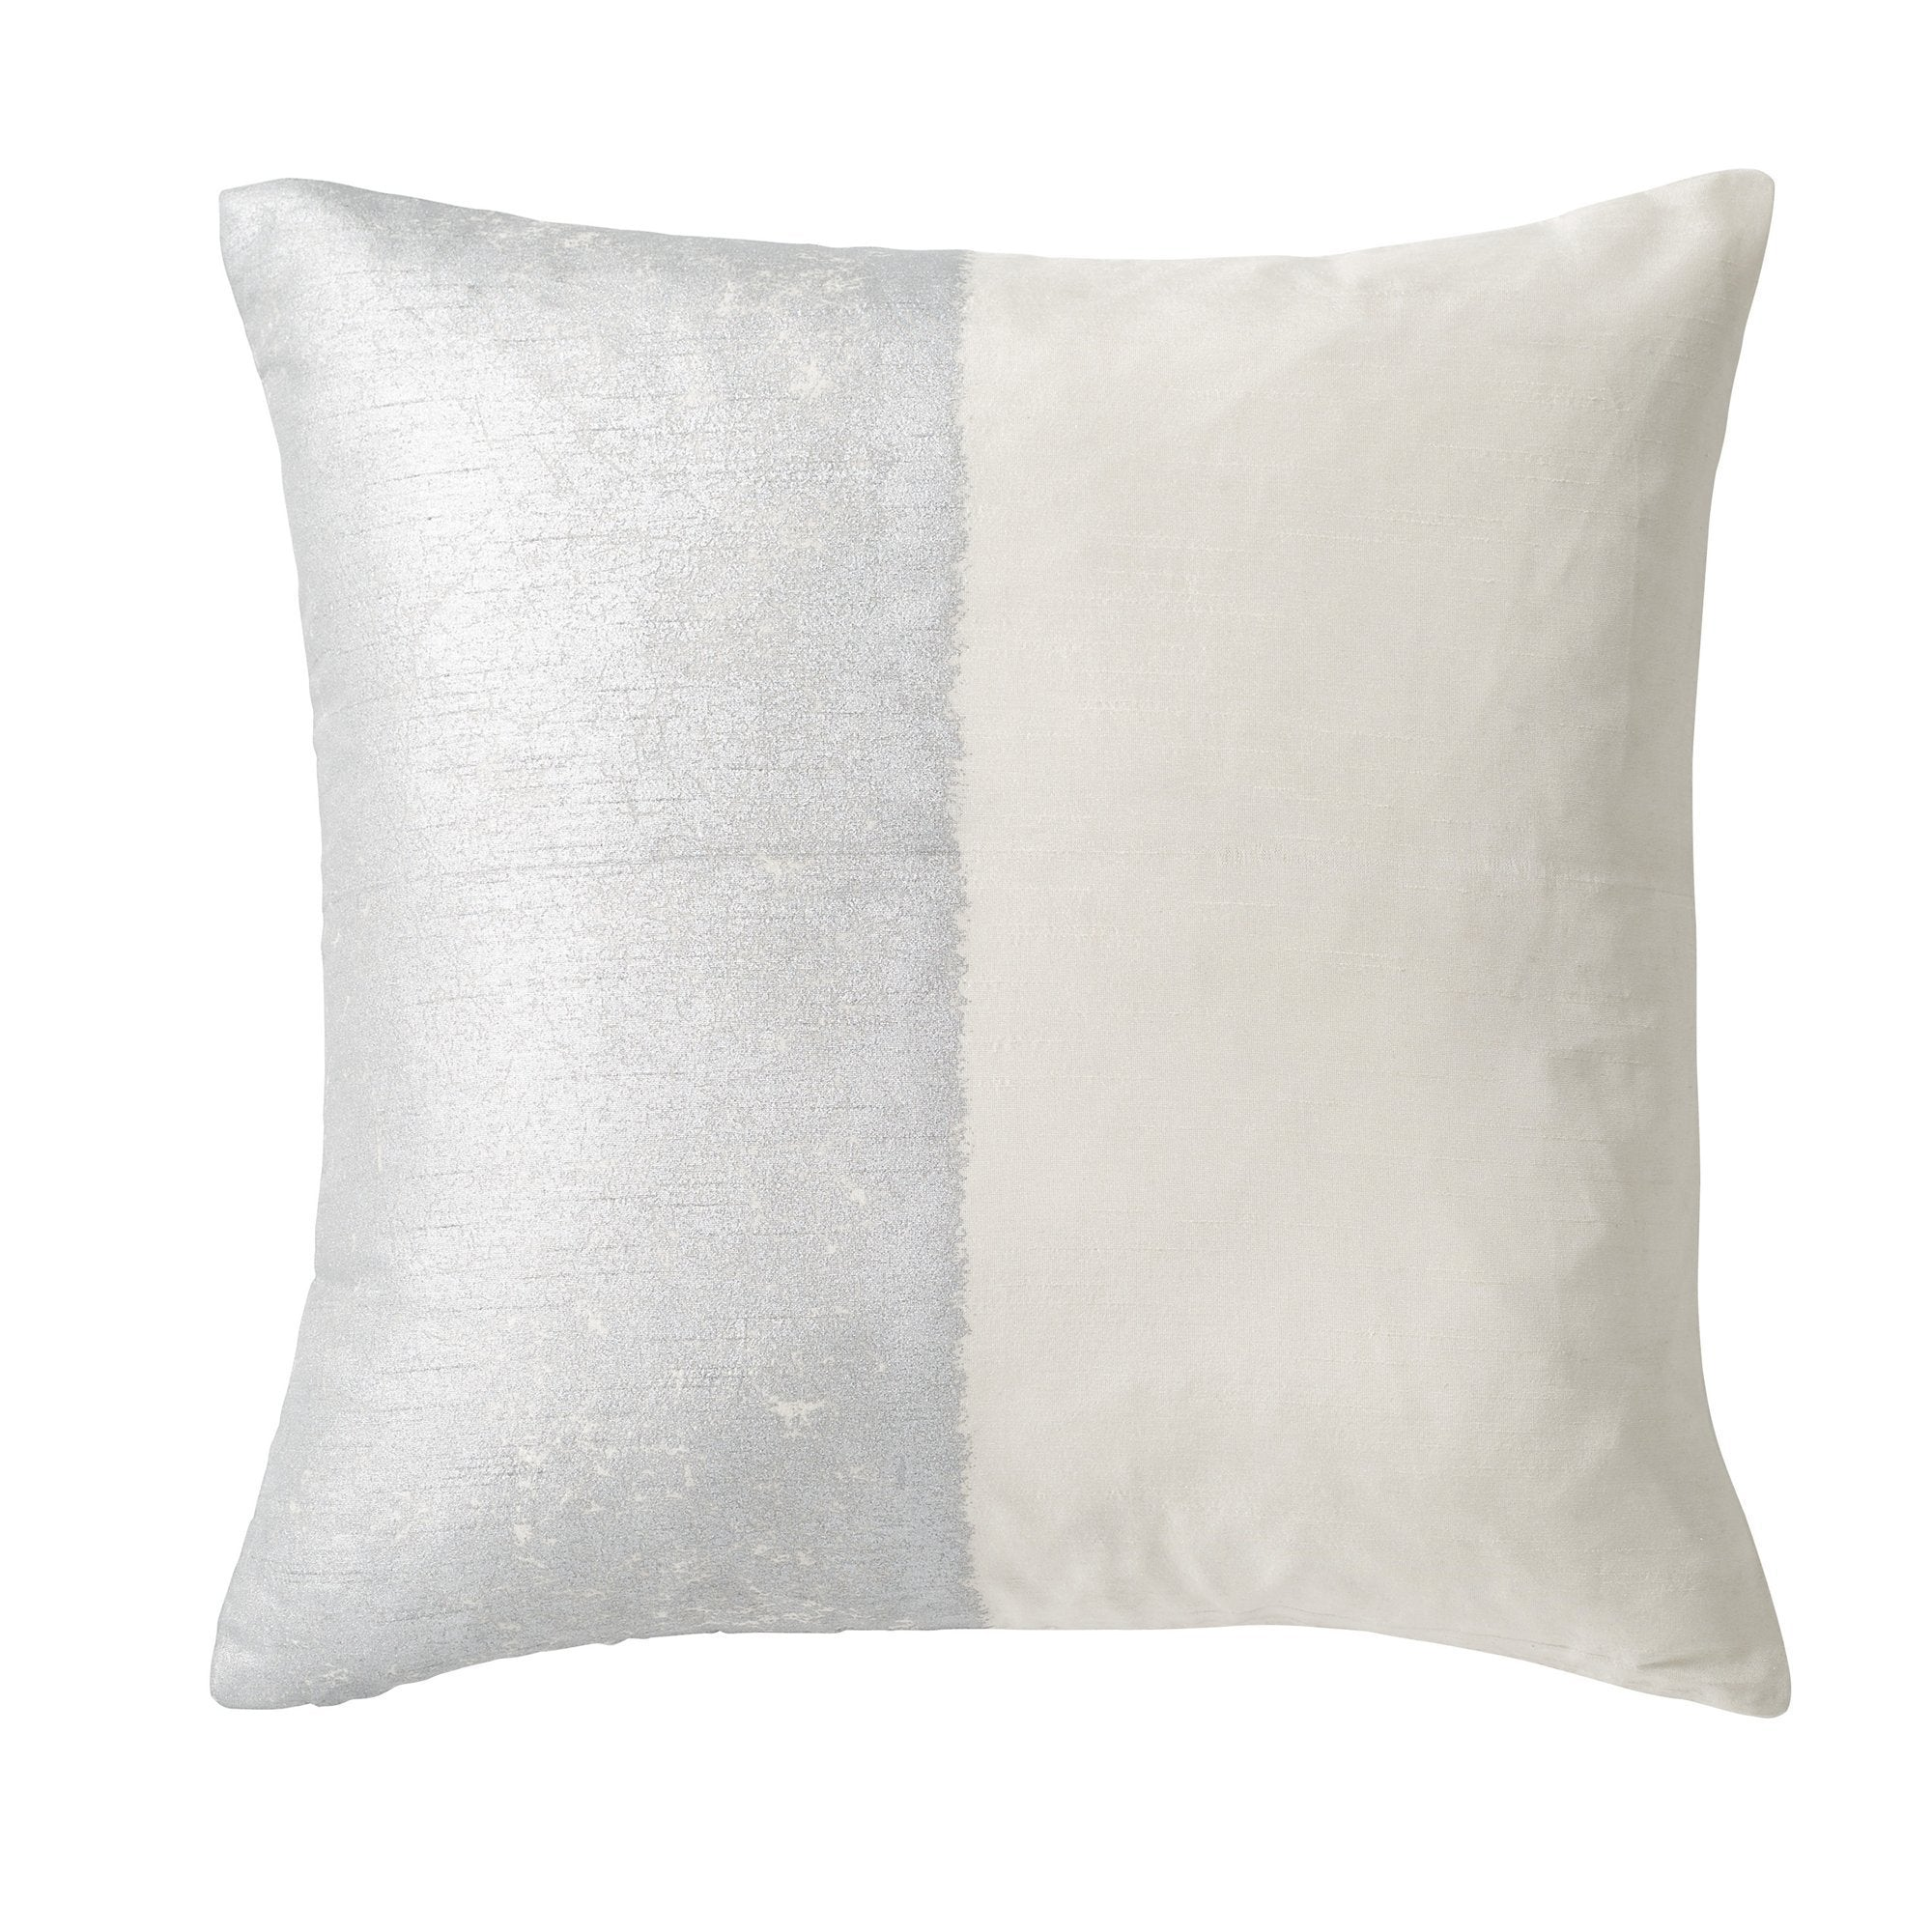 Metallic Texture Decorative Pillow - Ivory